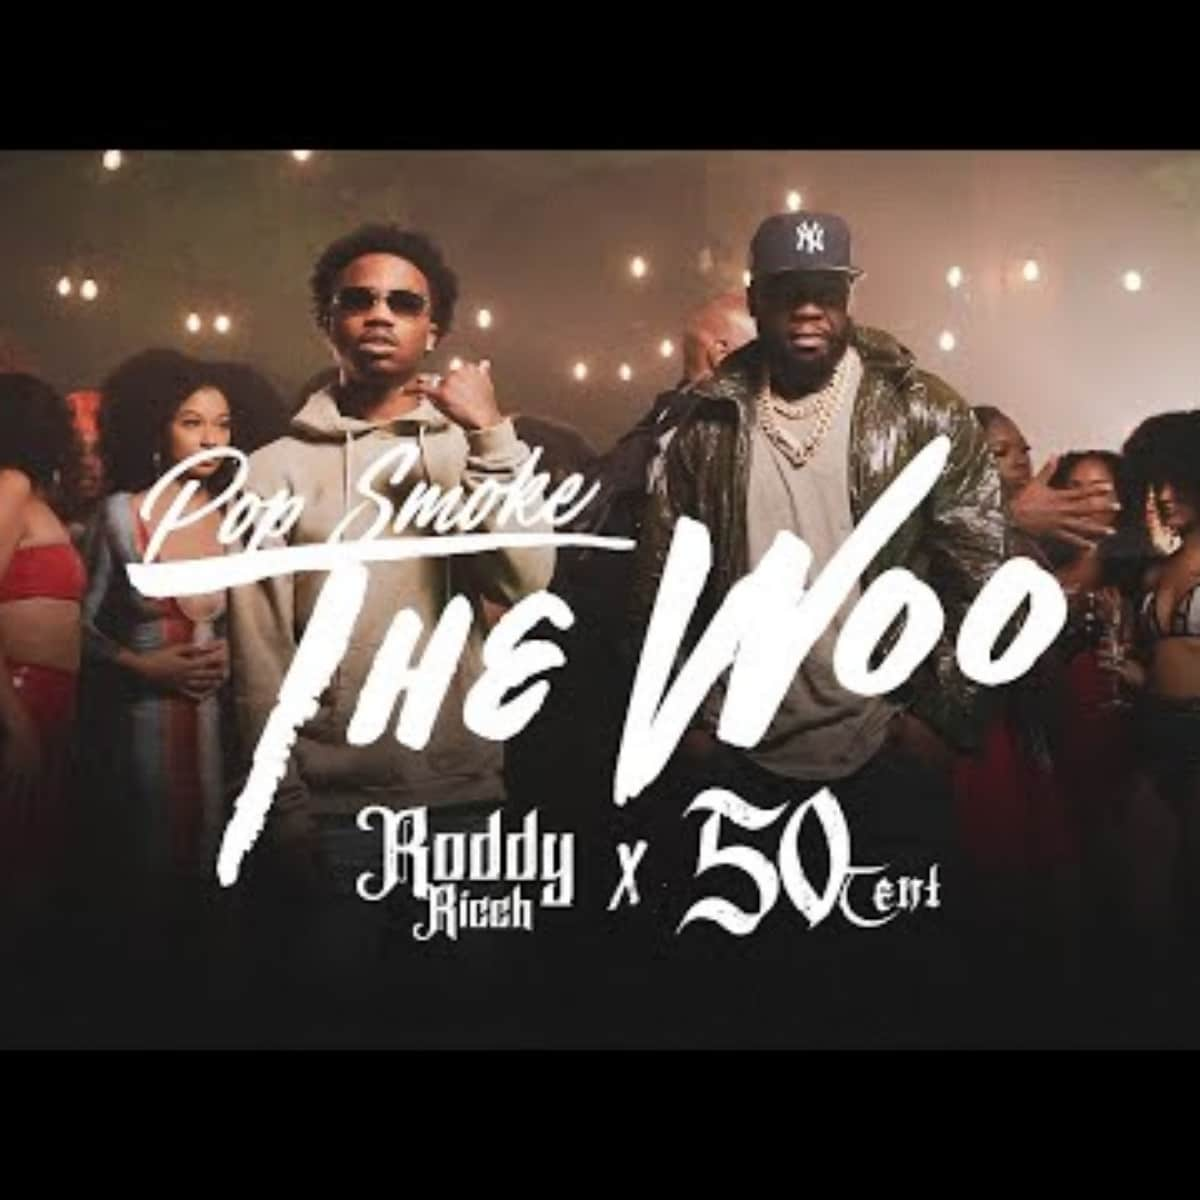 MP3: Pop Smoke Ft 50 Cent & Roddy Ricch – The Woo